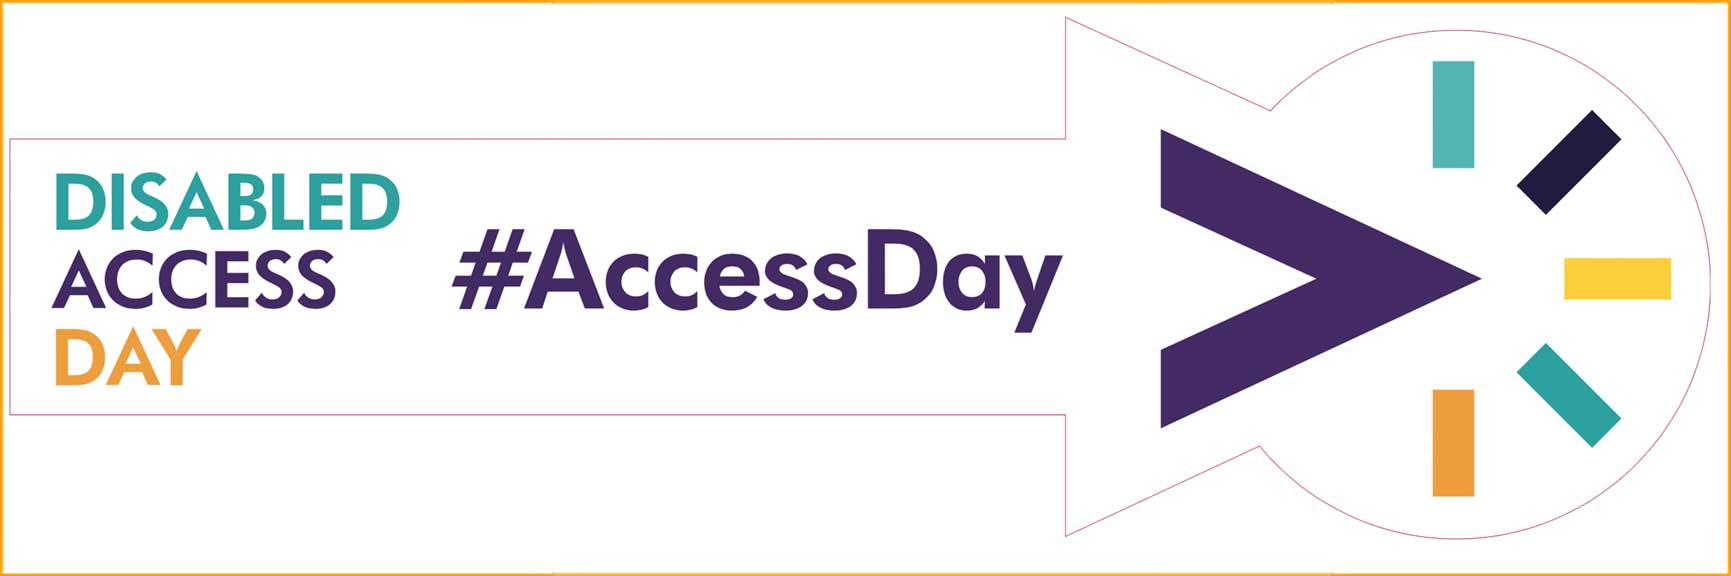 Disabled Access Day logo foe 2017 event with #AccessDay within an arrow pointing to the right